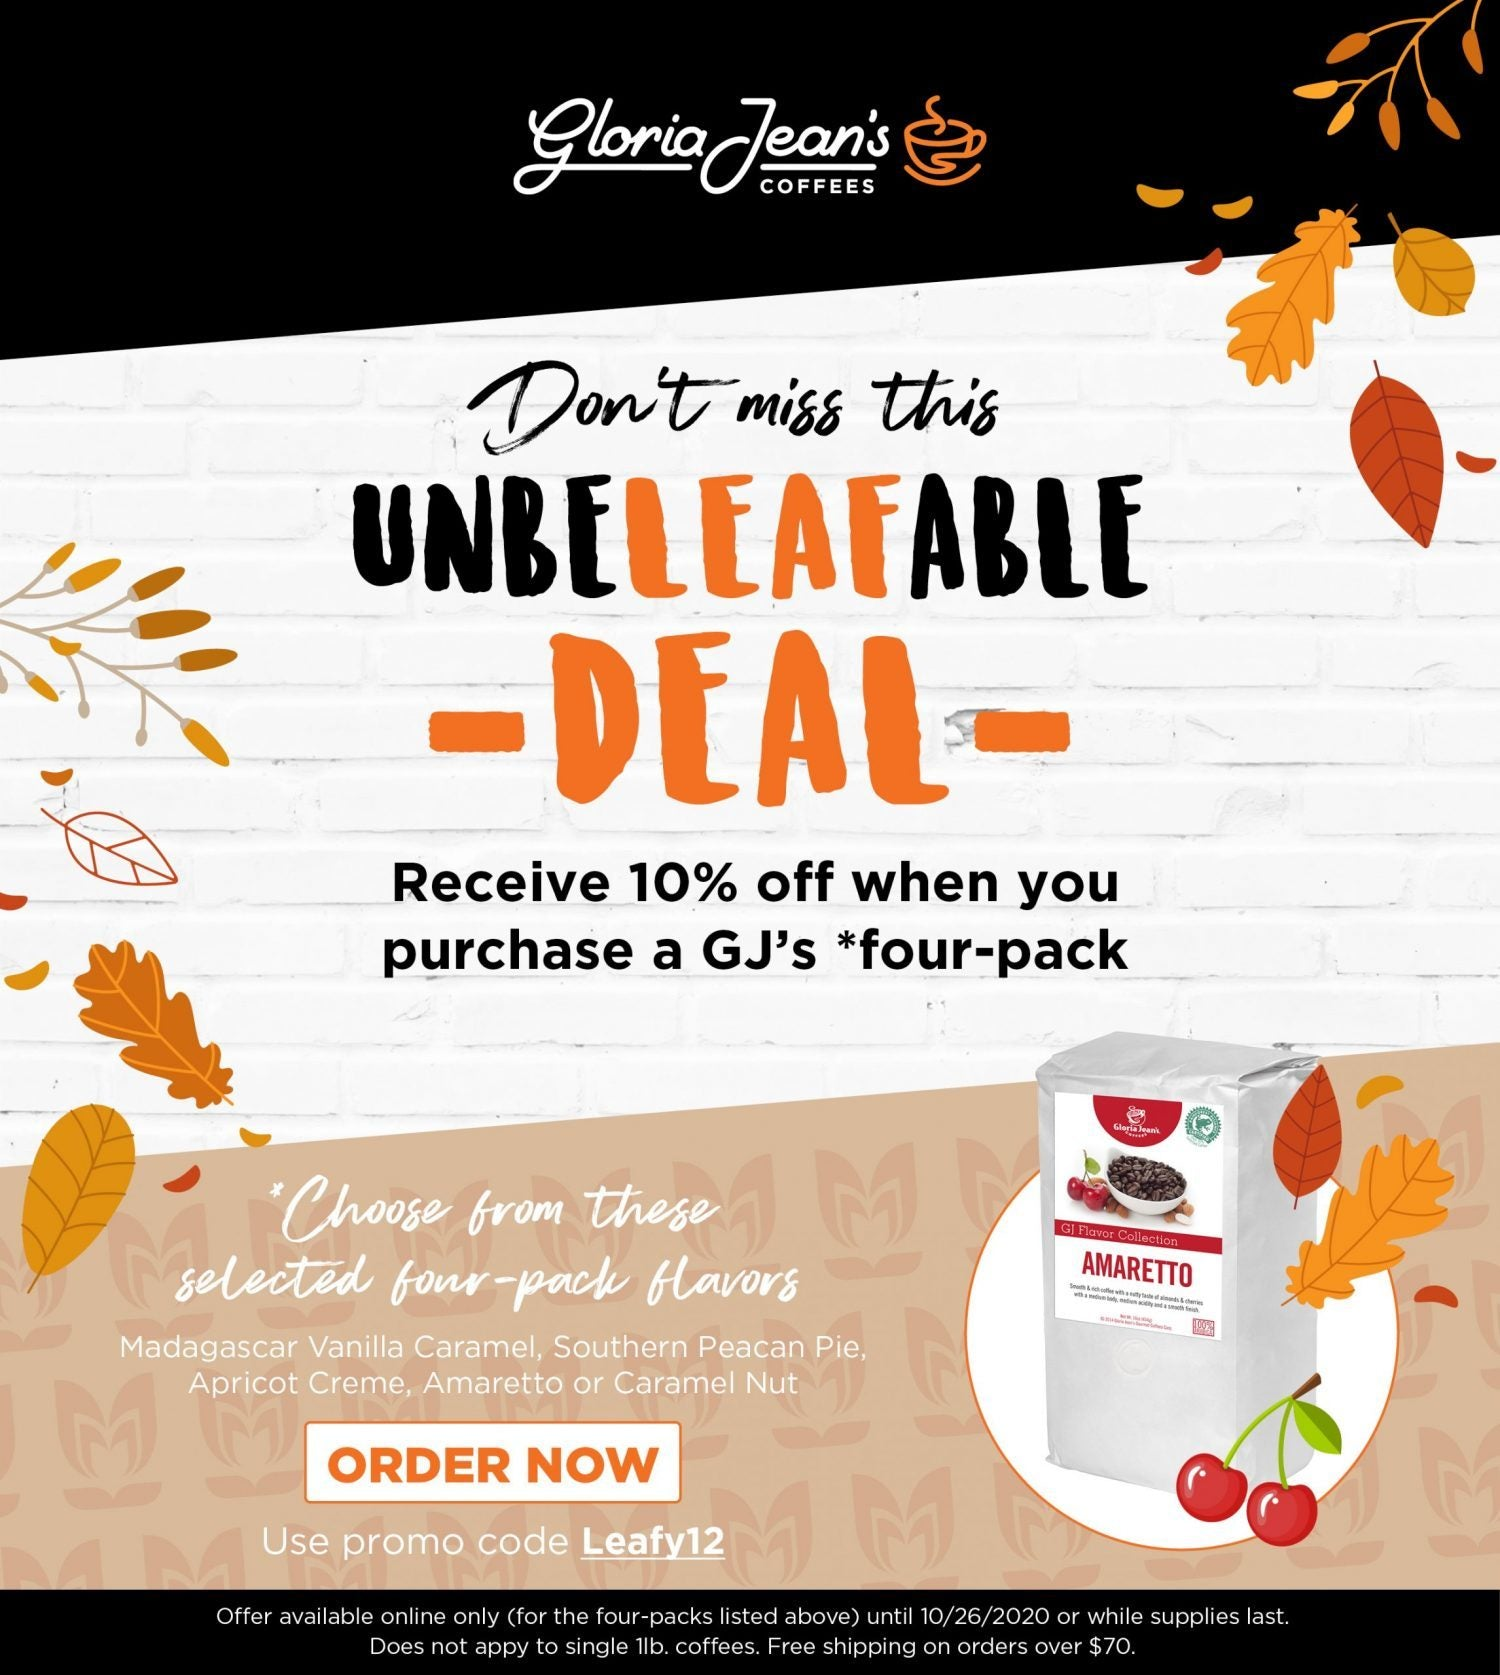 Unbeleafable Deal